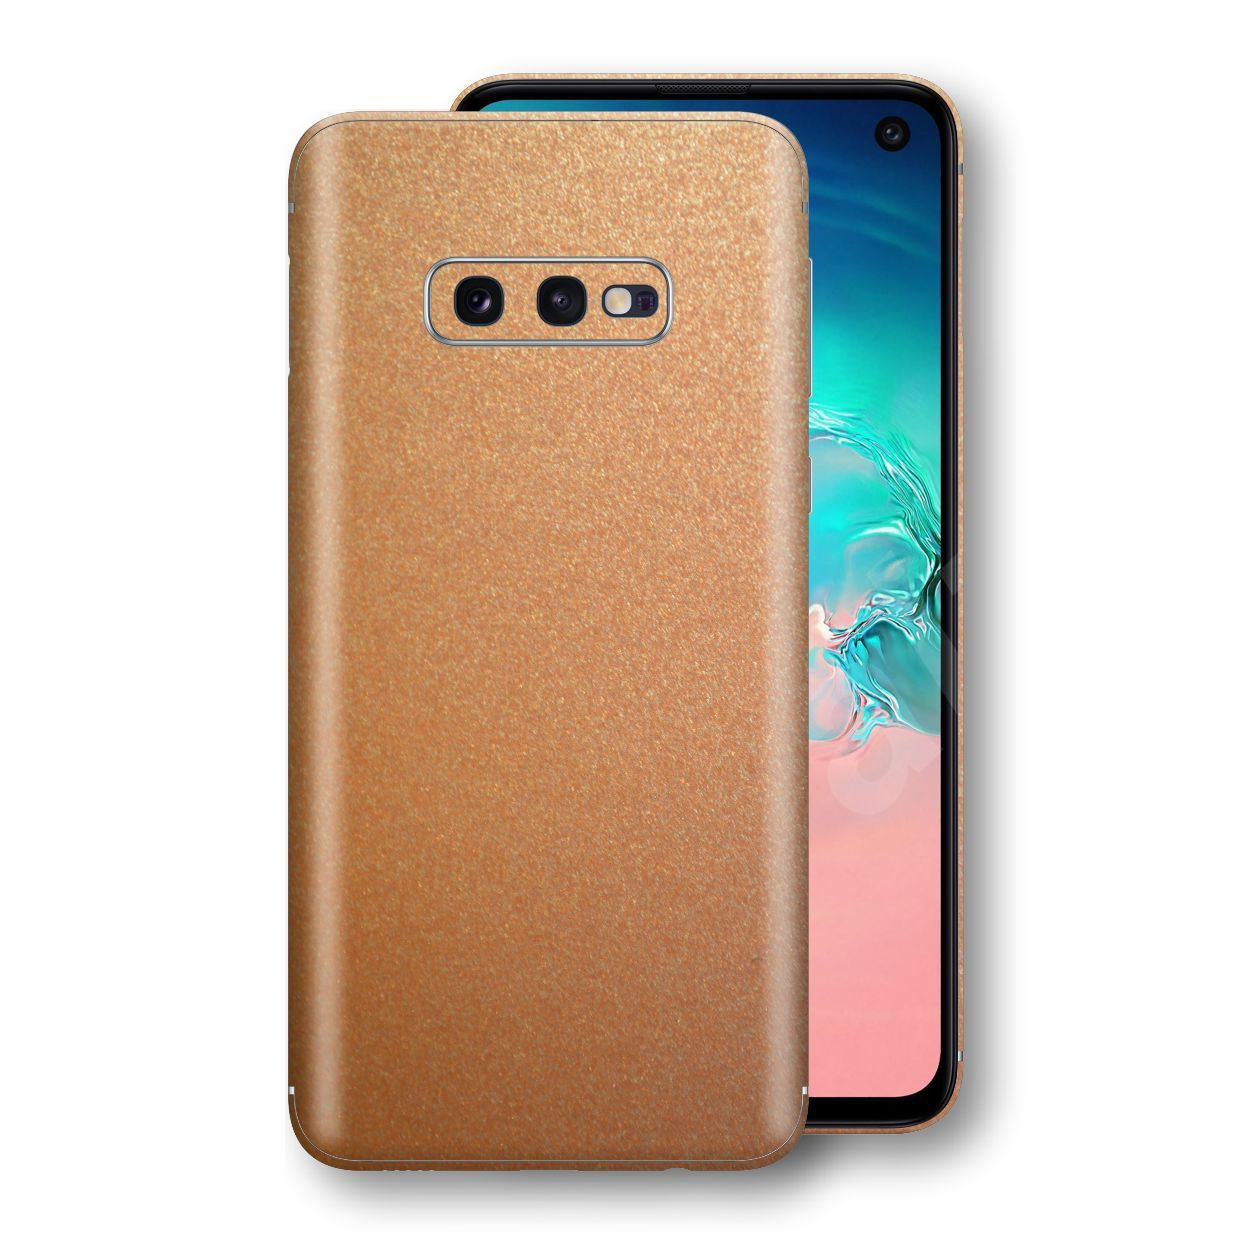 Samsung Galaxy S10e Copper Matt Metallic Skin, Decal, Wrap, Protector, Cover by EasySkinz | EasySkinz.com